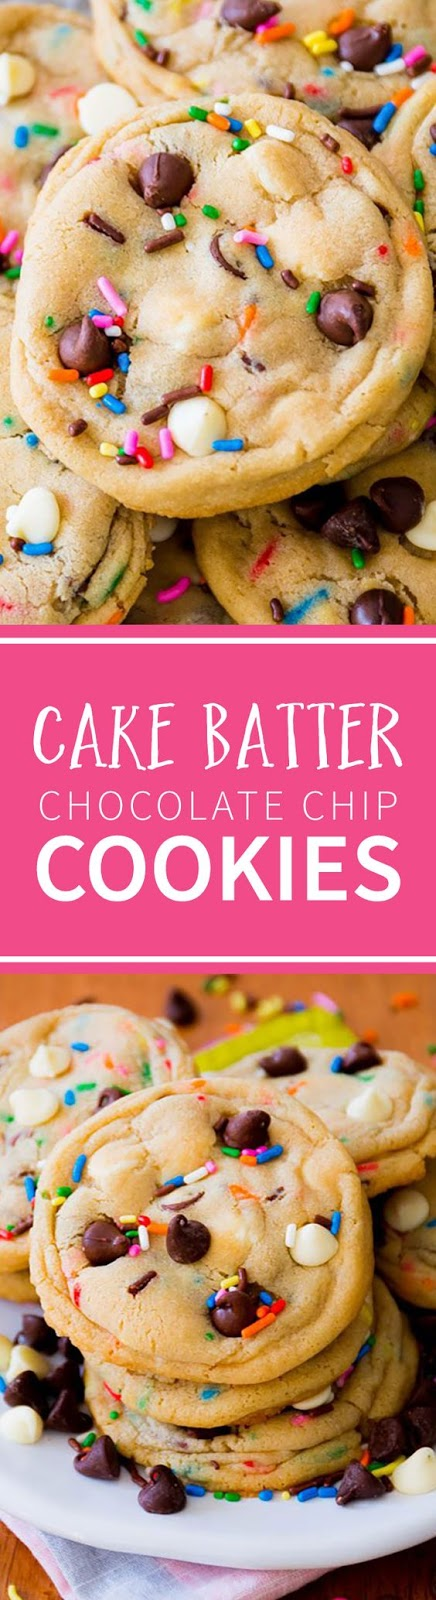 These Cake Batter Chocolate Chip Cookies are a cross between delicious, soft-baked chocolate chip cookies and sprinkle filled funfetti cake #funfetti #cake #chocolate #chip #chocolatechip #cookies #dessert